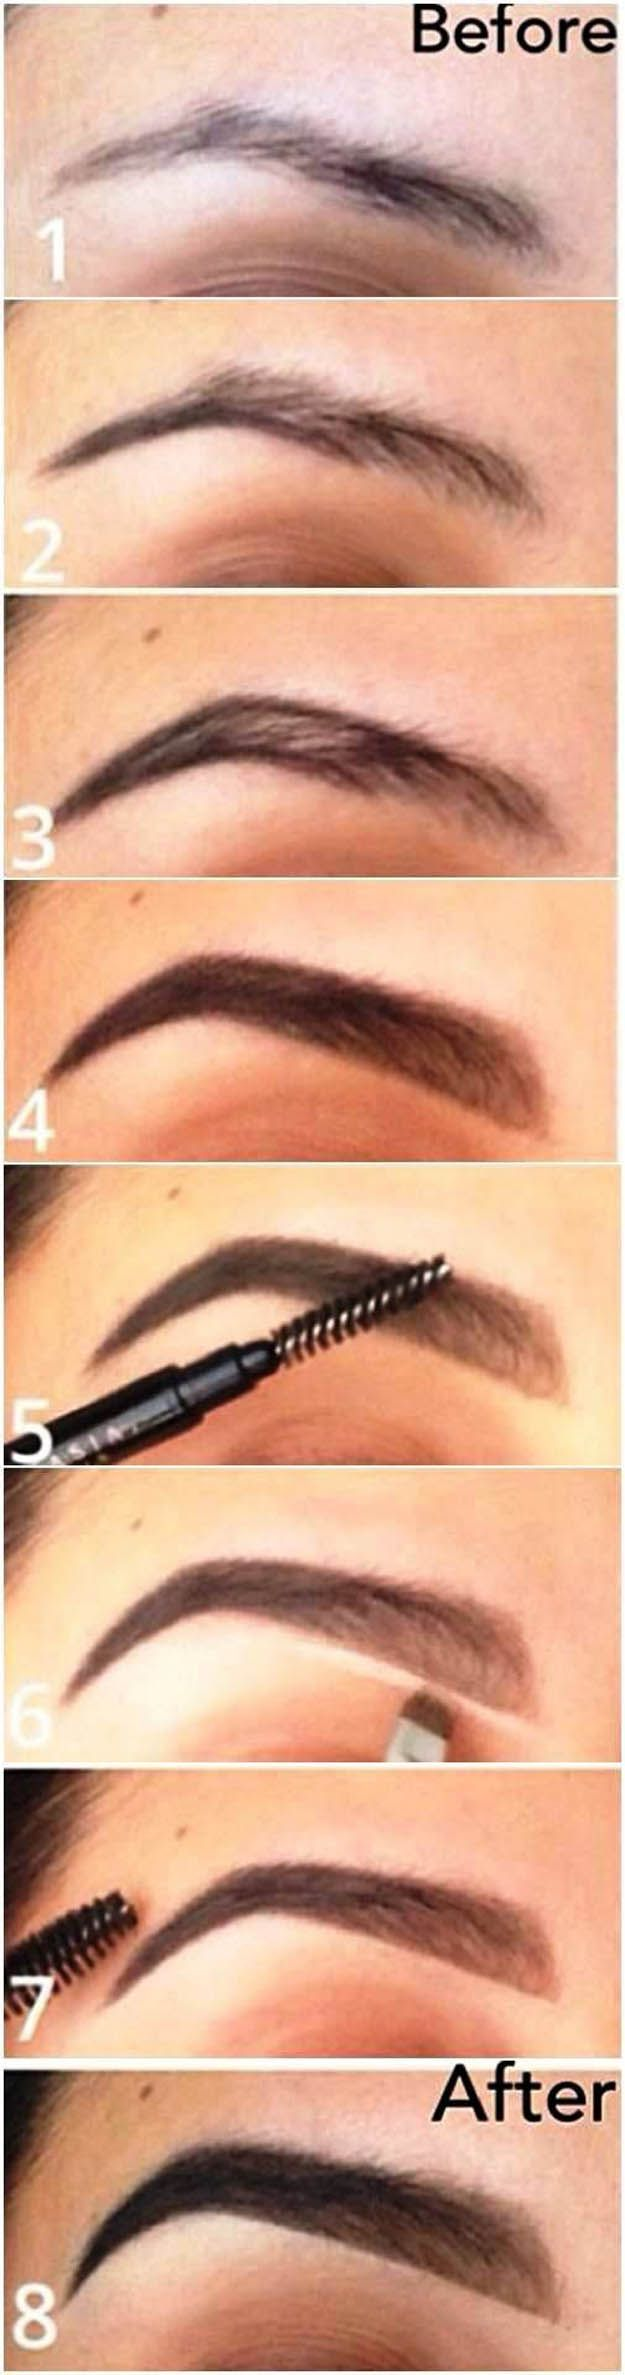 Easy On-The-Go Eyeshadow via Jessica Marie Makeup Romantic Eyeshadow Tutorial for Any Eyeshadow Colors via The Drugstore Princess How to Make Your Eyelashes Look Longer and Thicker via The Makeup Chair How to Tightline Eyes via Beautylish How to Use Eyebrow Stencils via The Wonder Forest